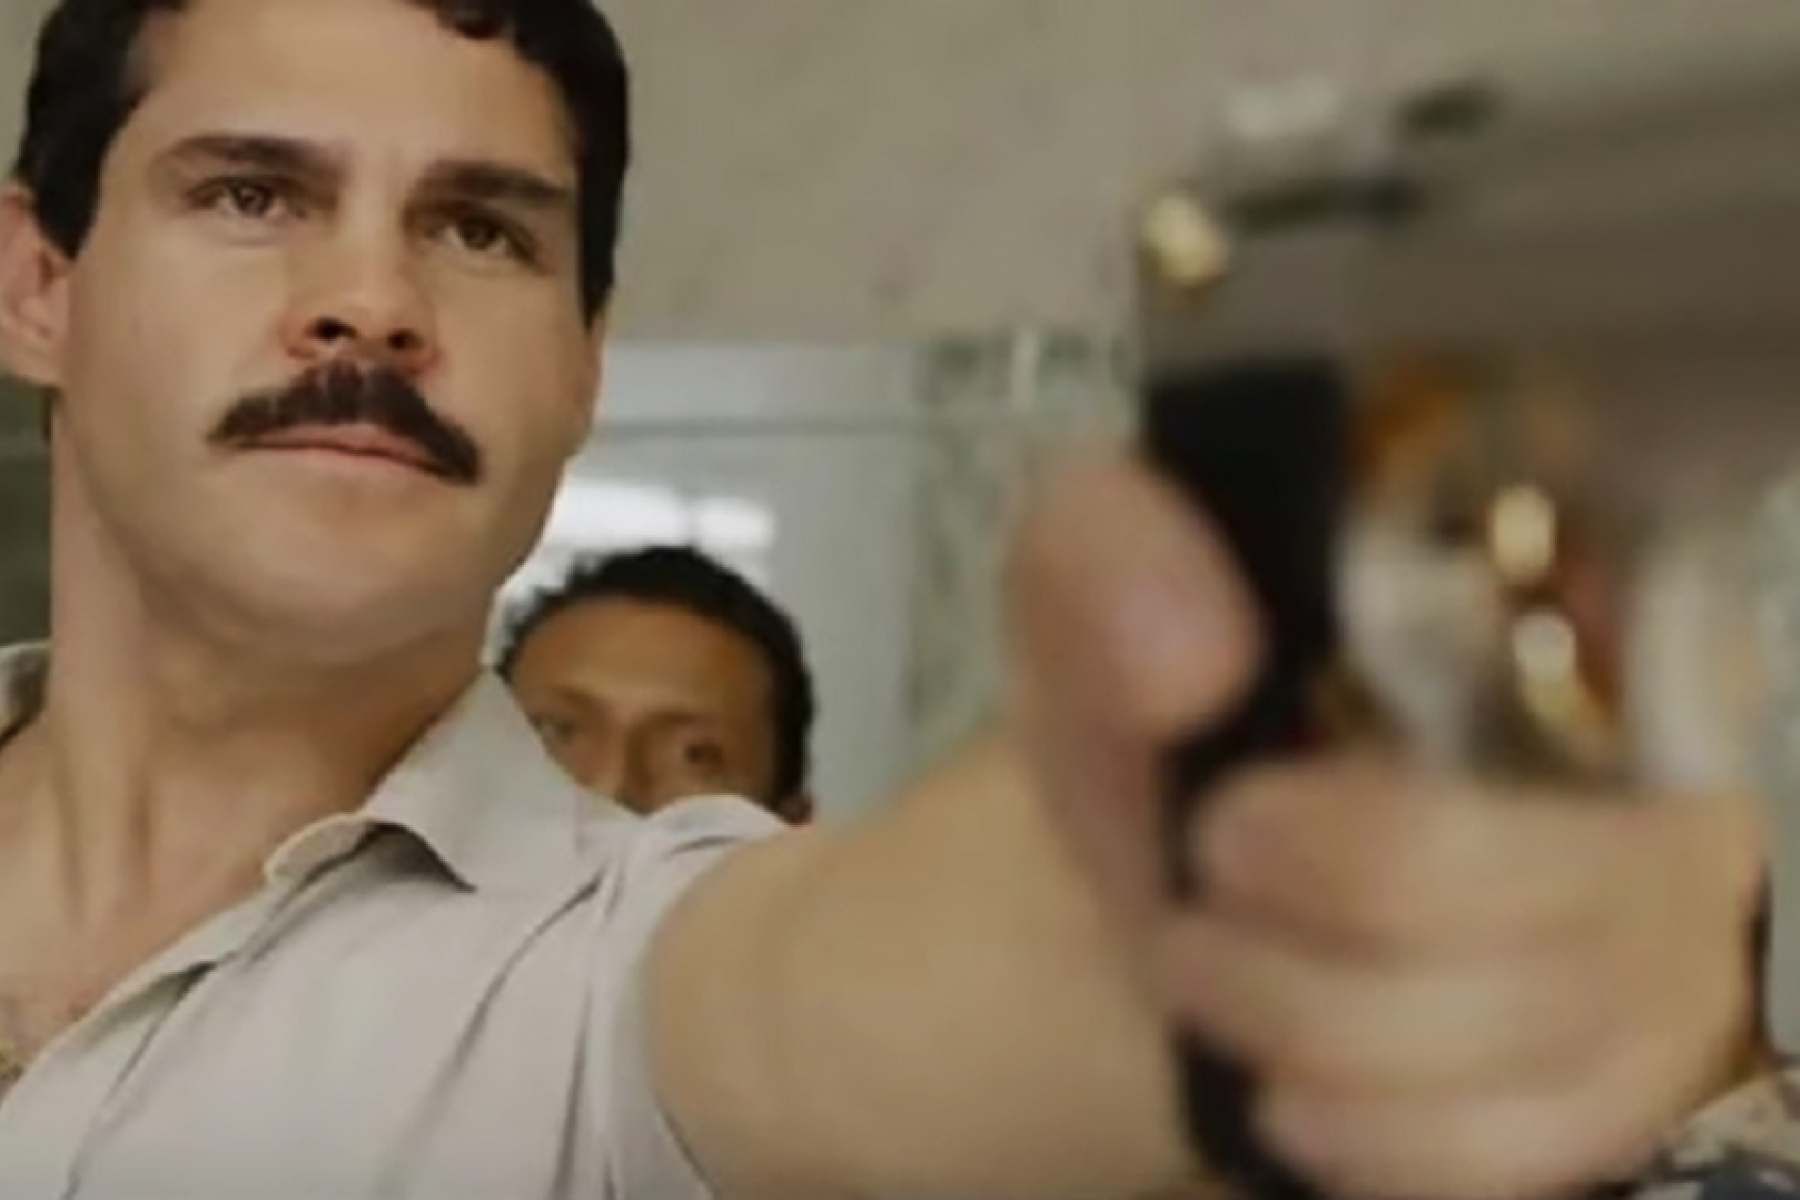 Inside 'El Chapo': How a Cartel Kingpin Became a Pop Outlaw - Rolling Stone